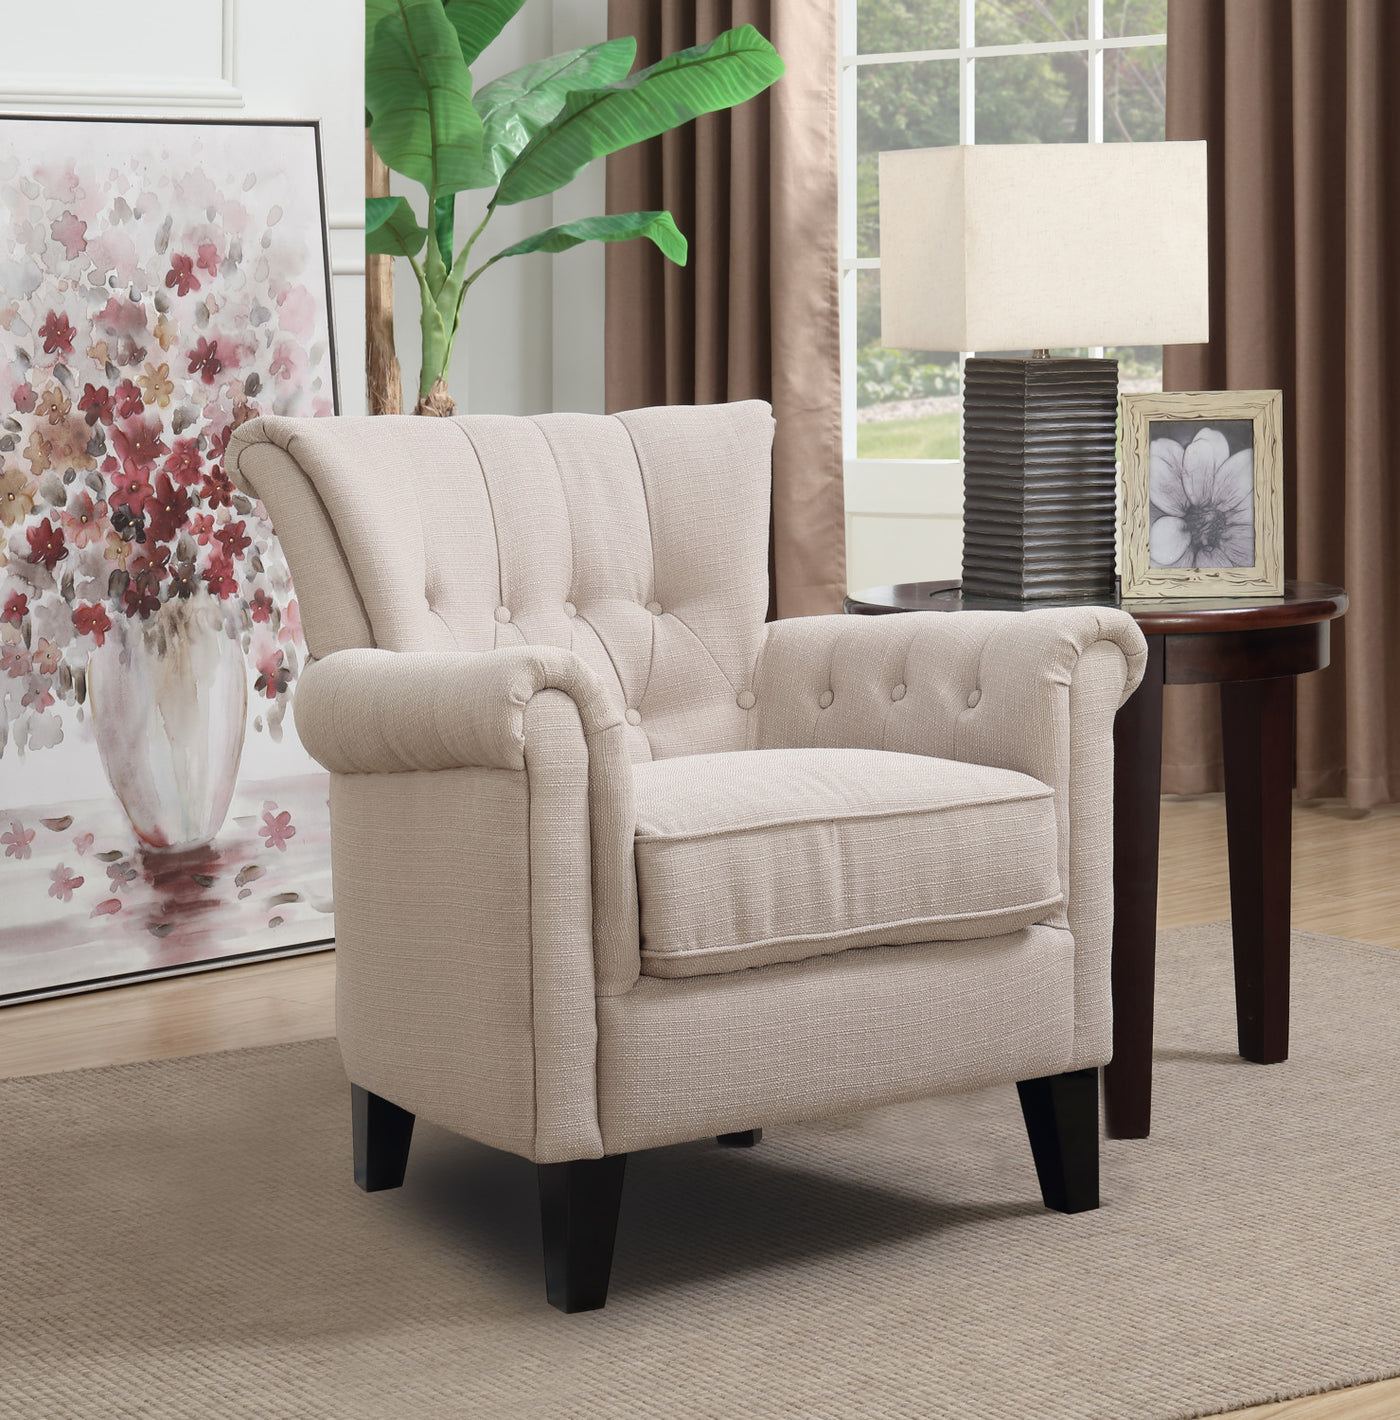 Nora Accent Chair Leons: Molly Accent Chair - Beige